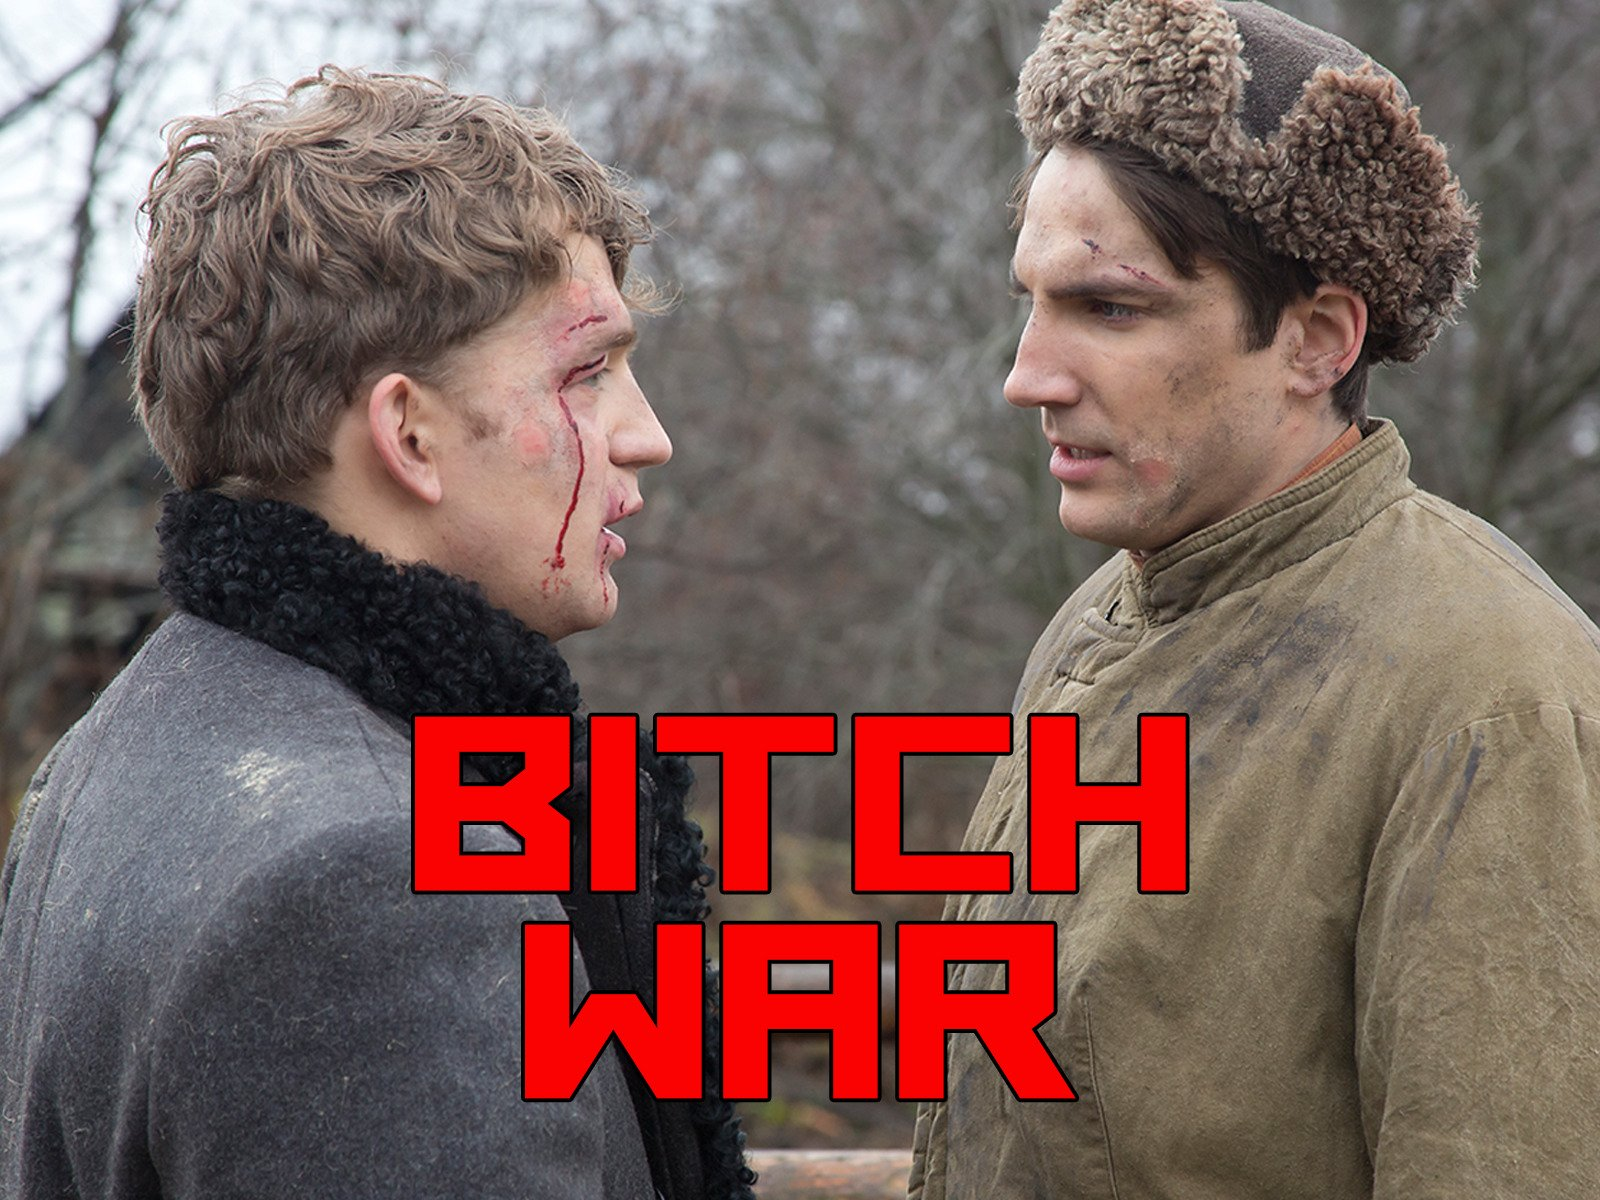 Bitch War